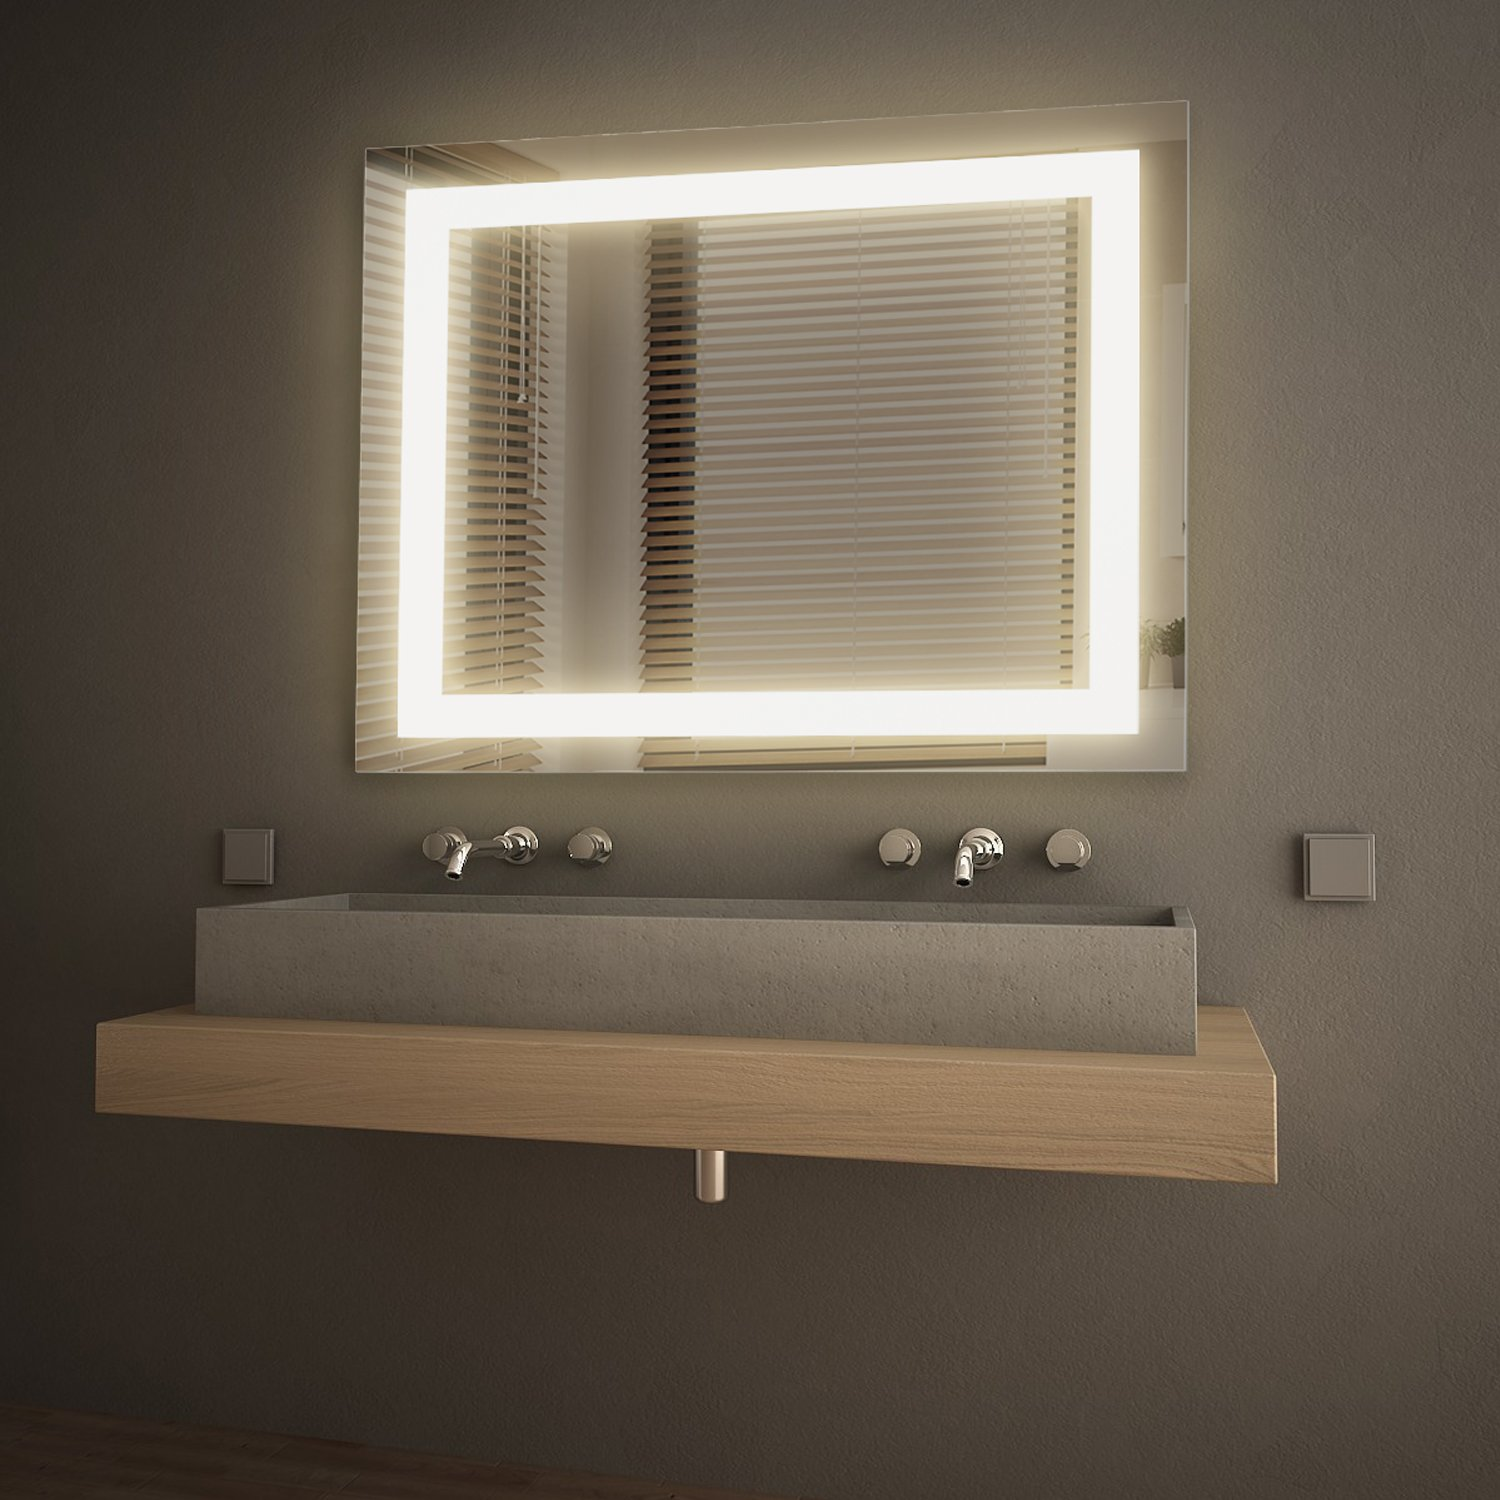 GetInLight LED Wall Mounted Lighted Vanity Mirror, 3000K(Soft White), ETL Listed, Damp Location Rated, IN-0405-3-30-36-3K